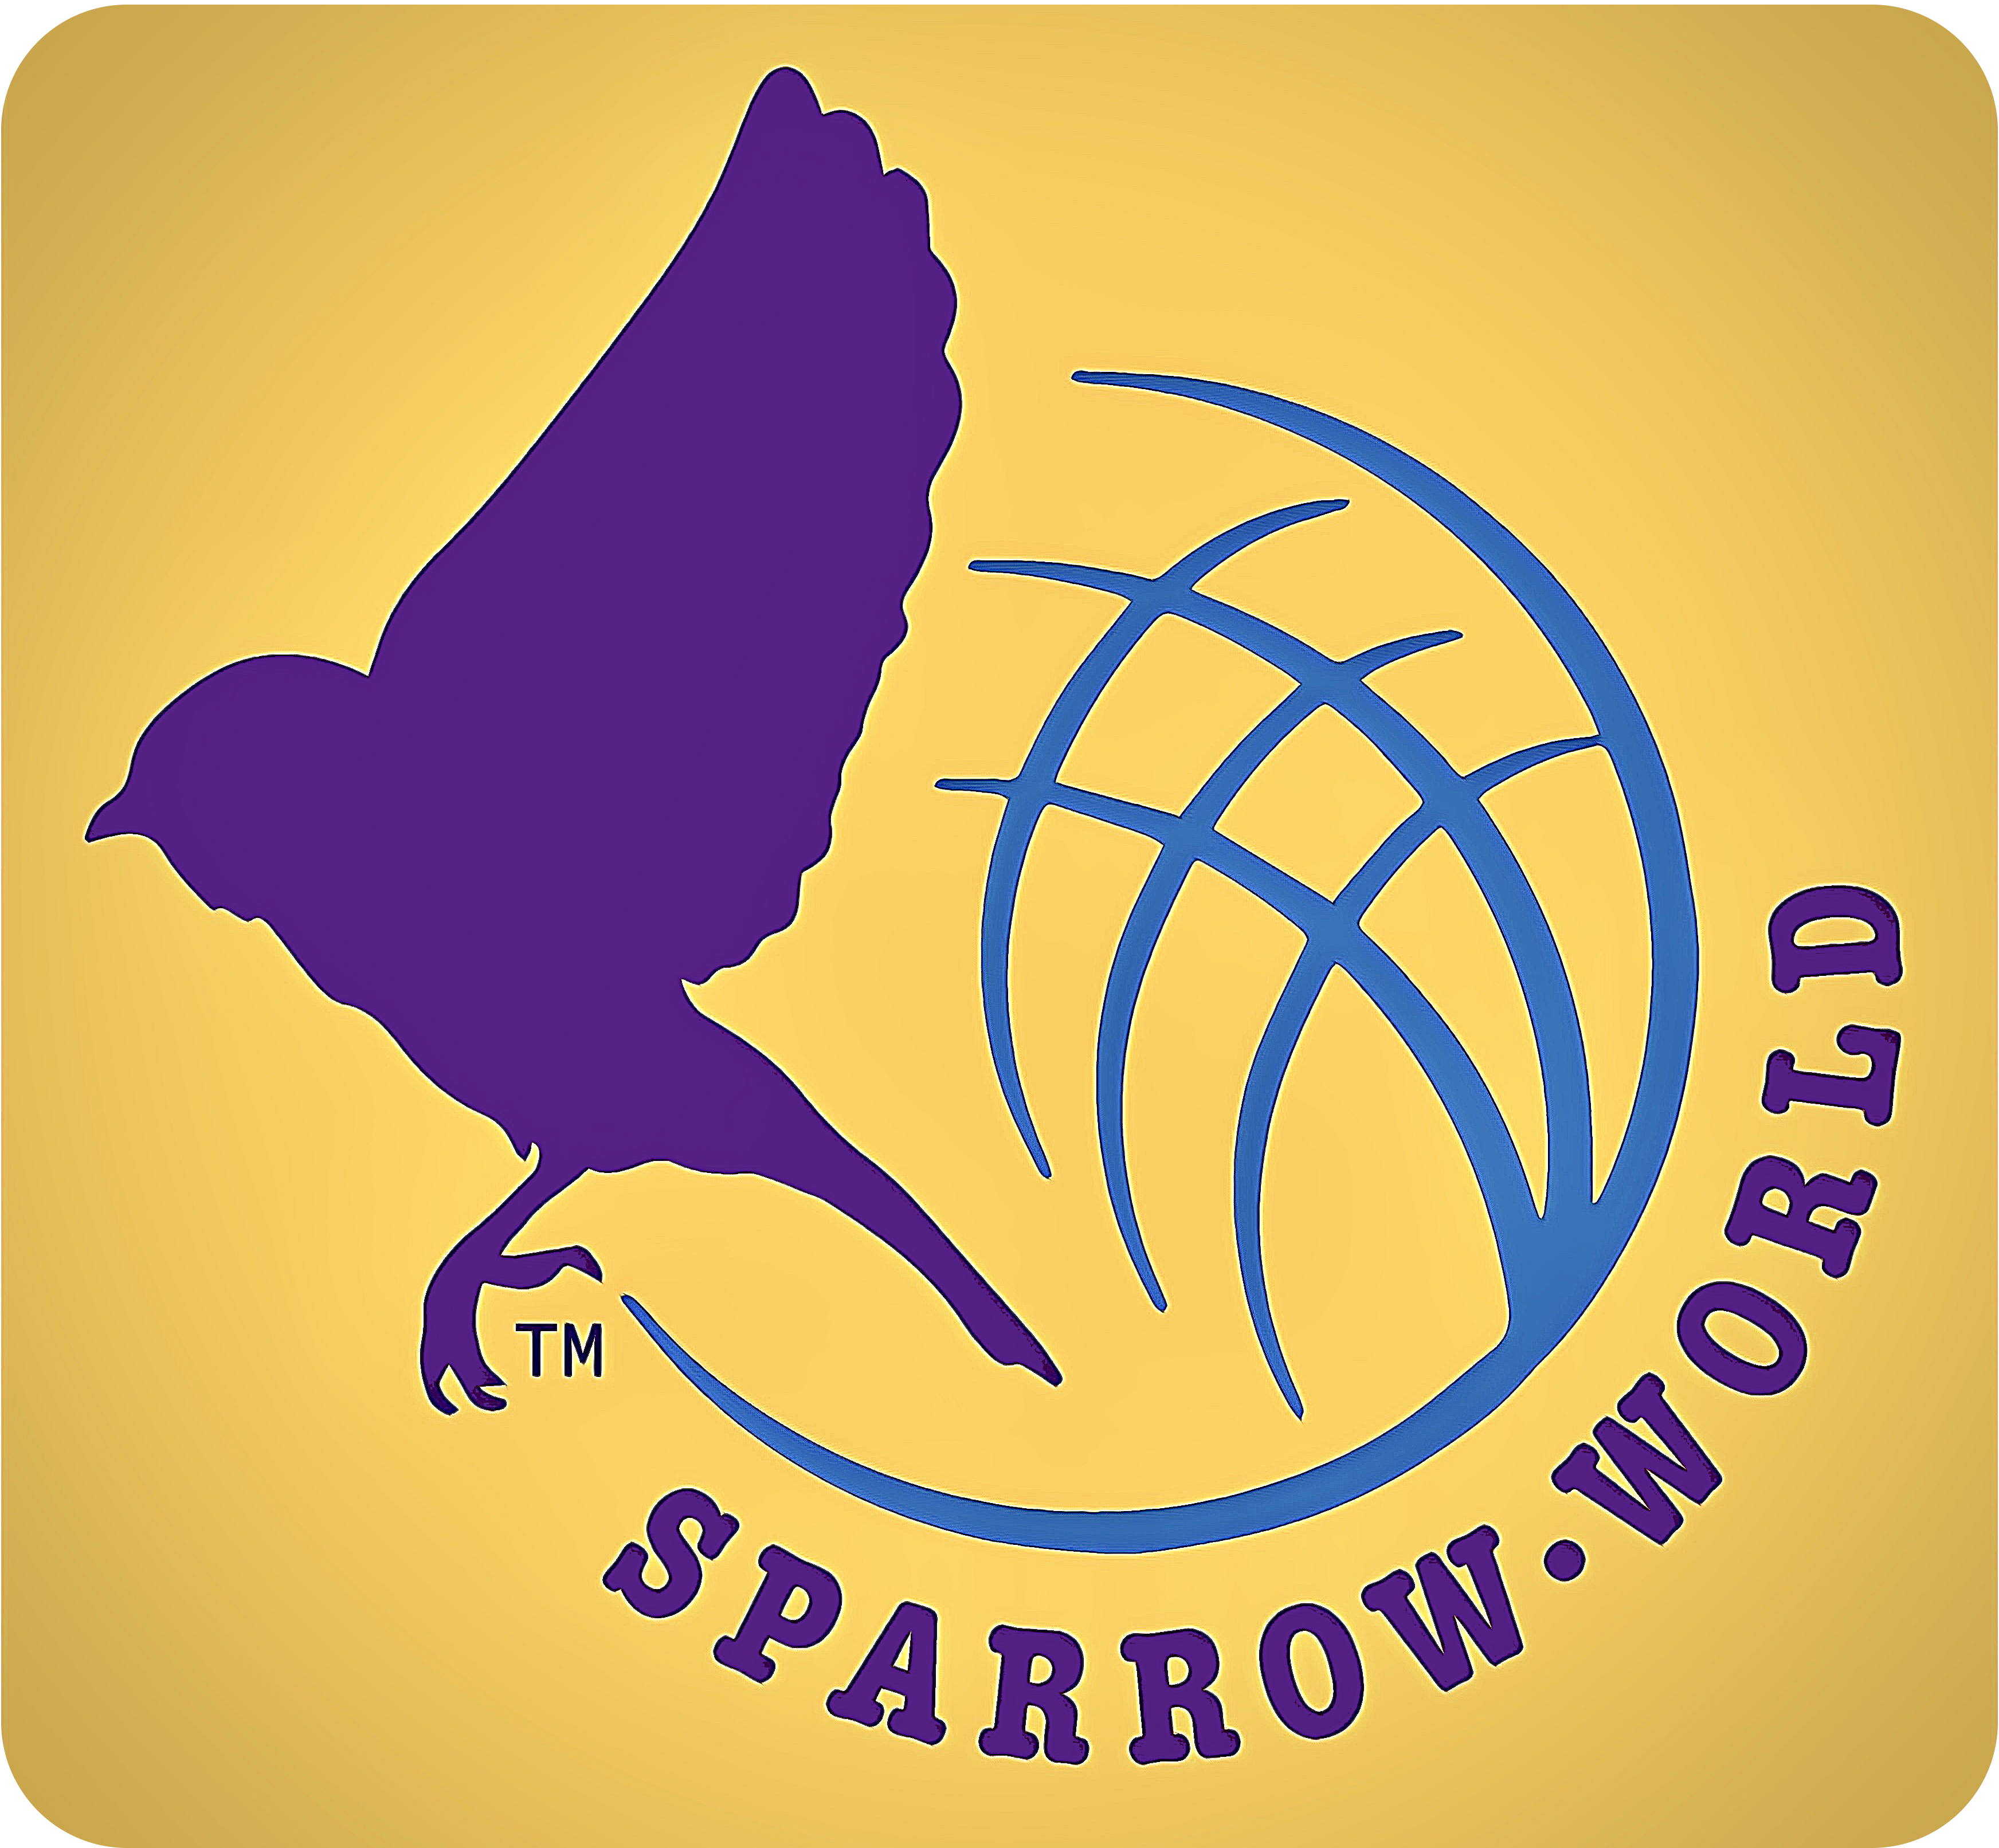 Sparrow.World